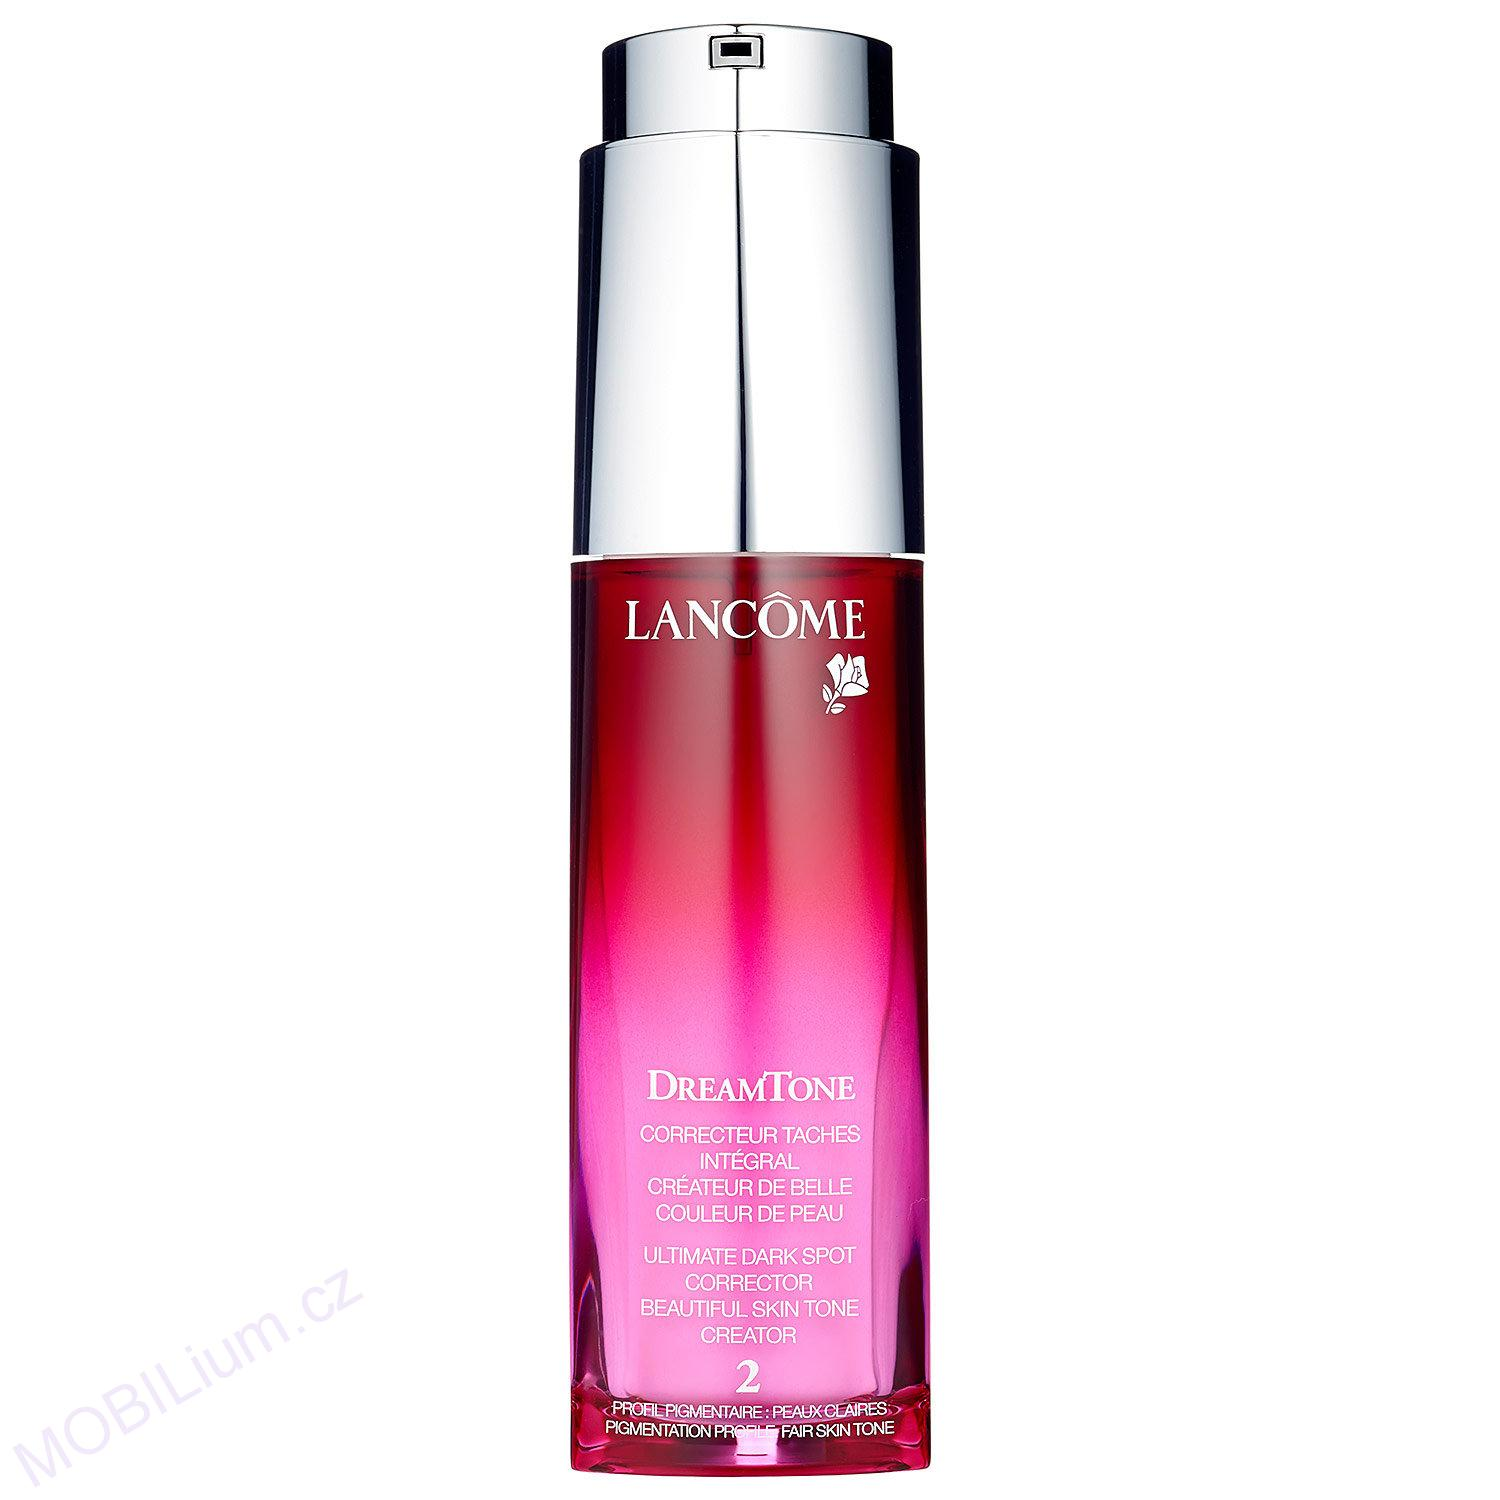 Lancome DreamTone (Ultimate Dark Spot Corrector) 02 40 ml